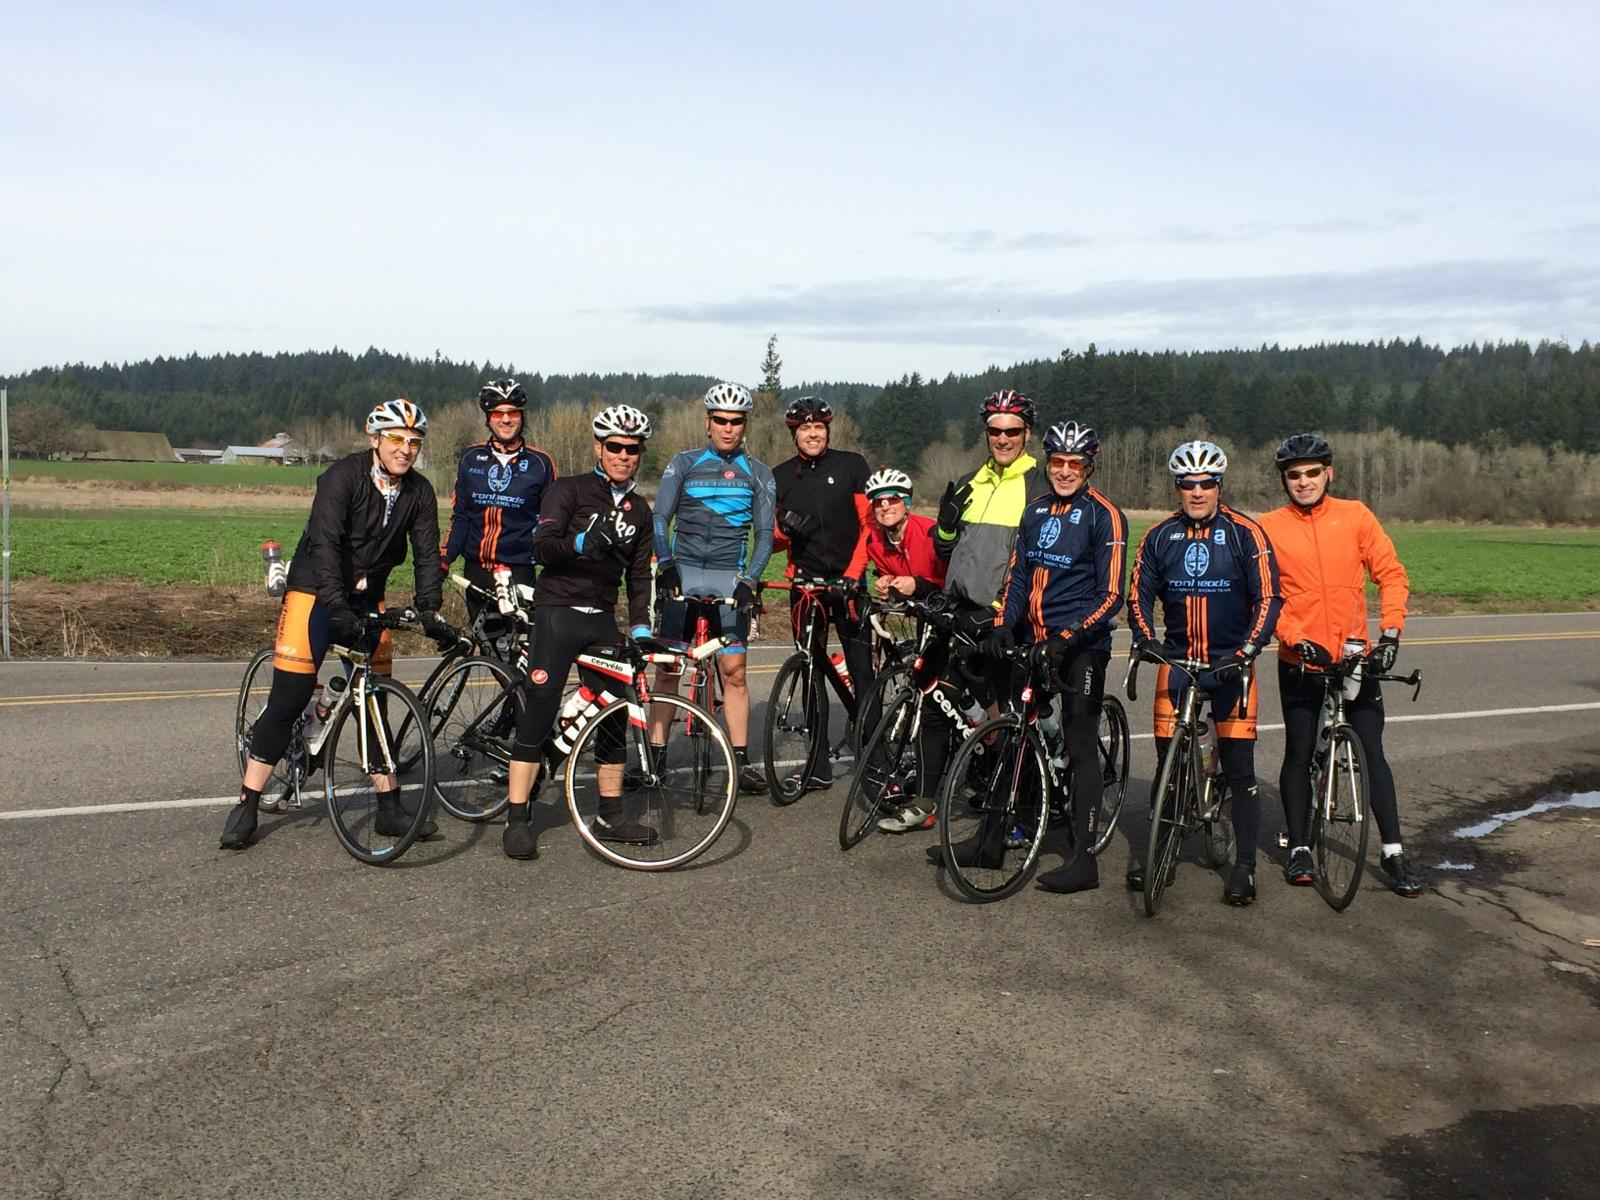 West side group ride